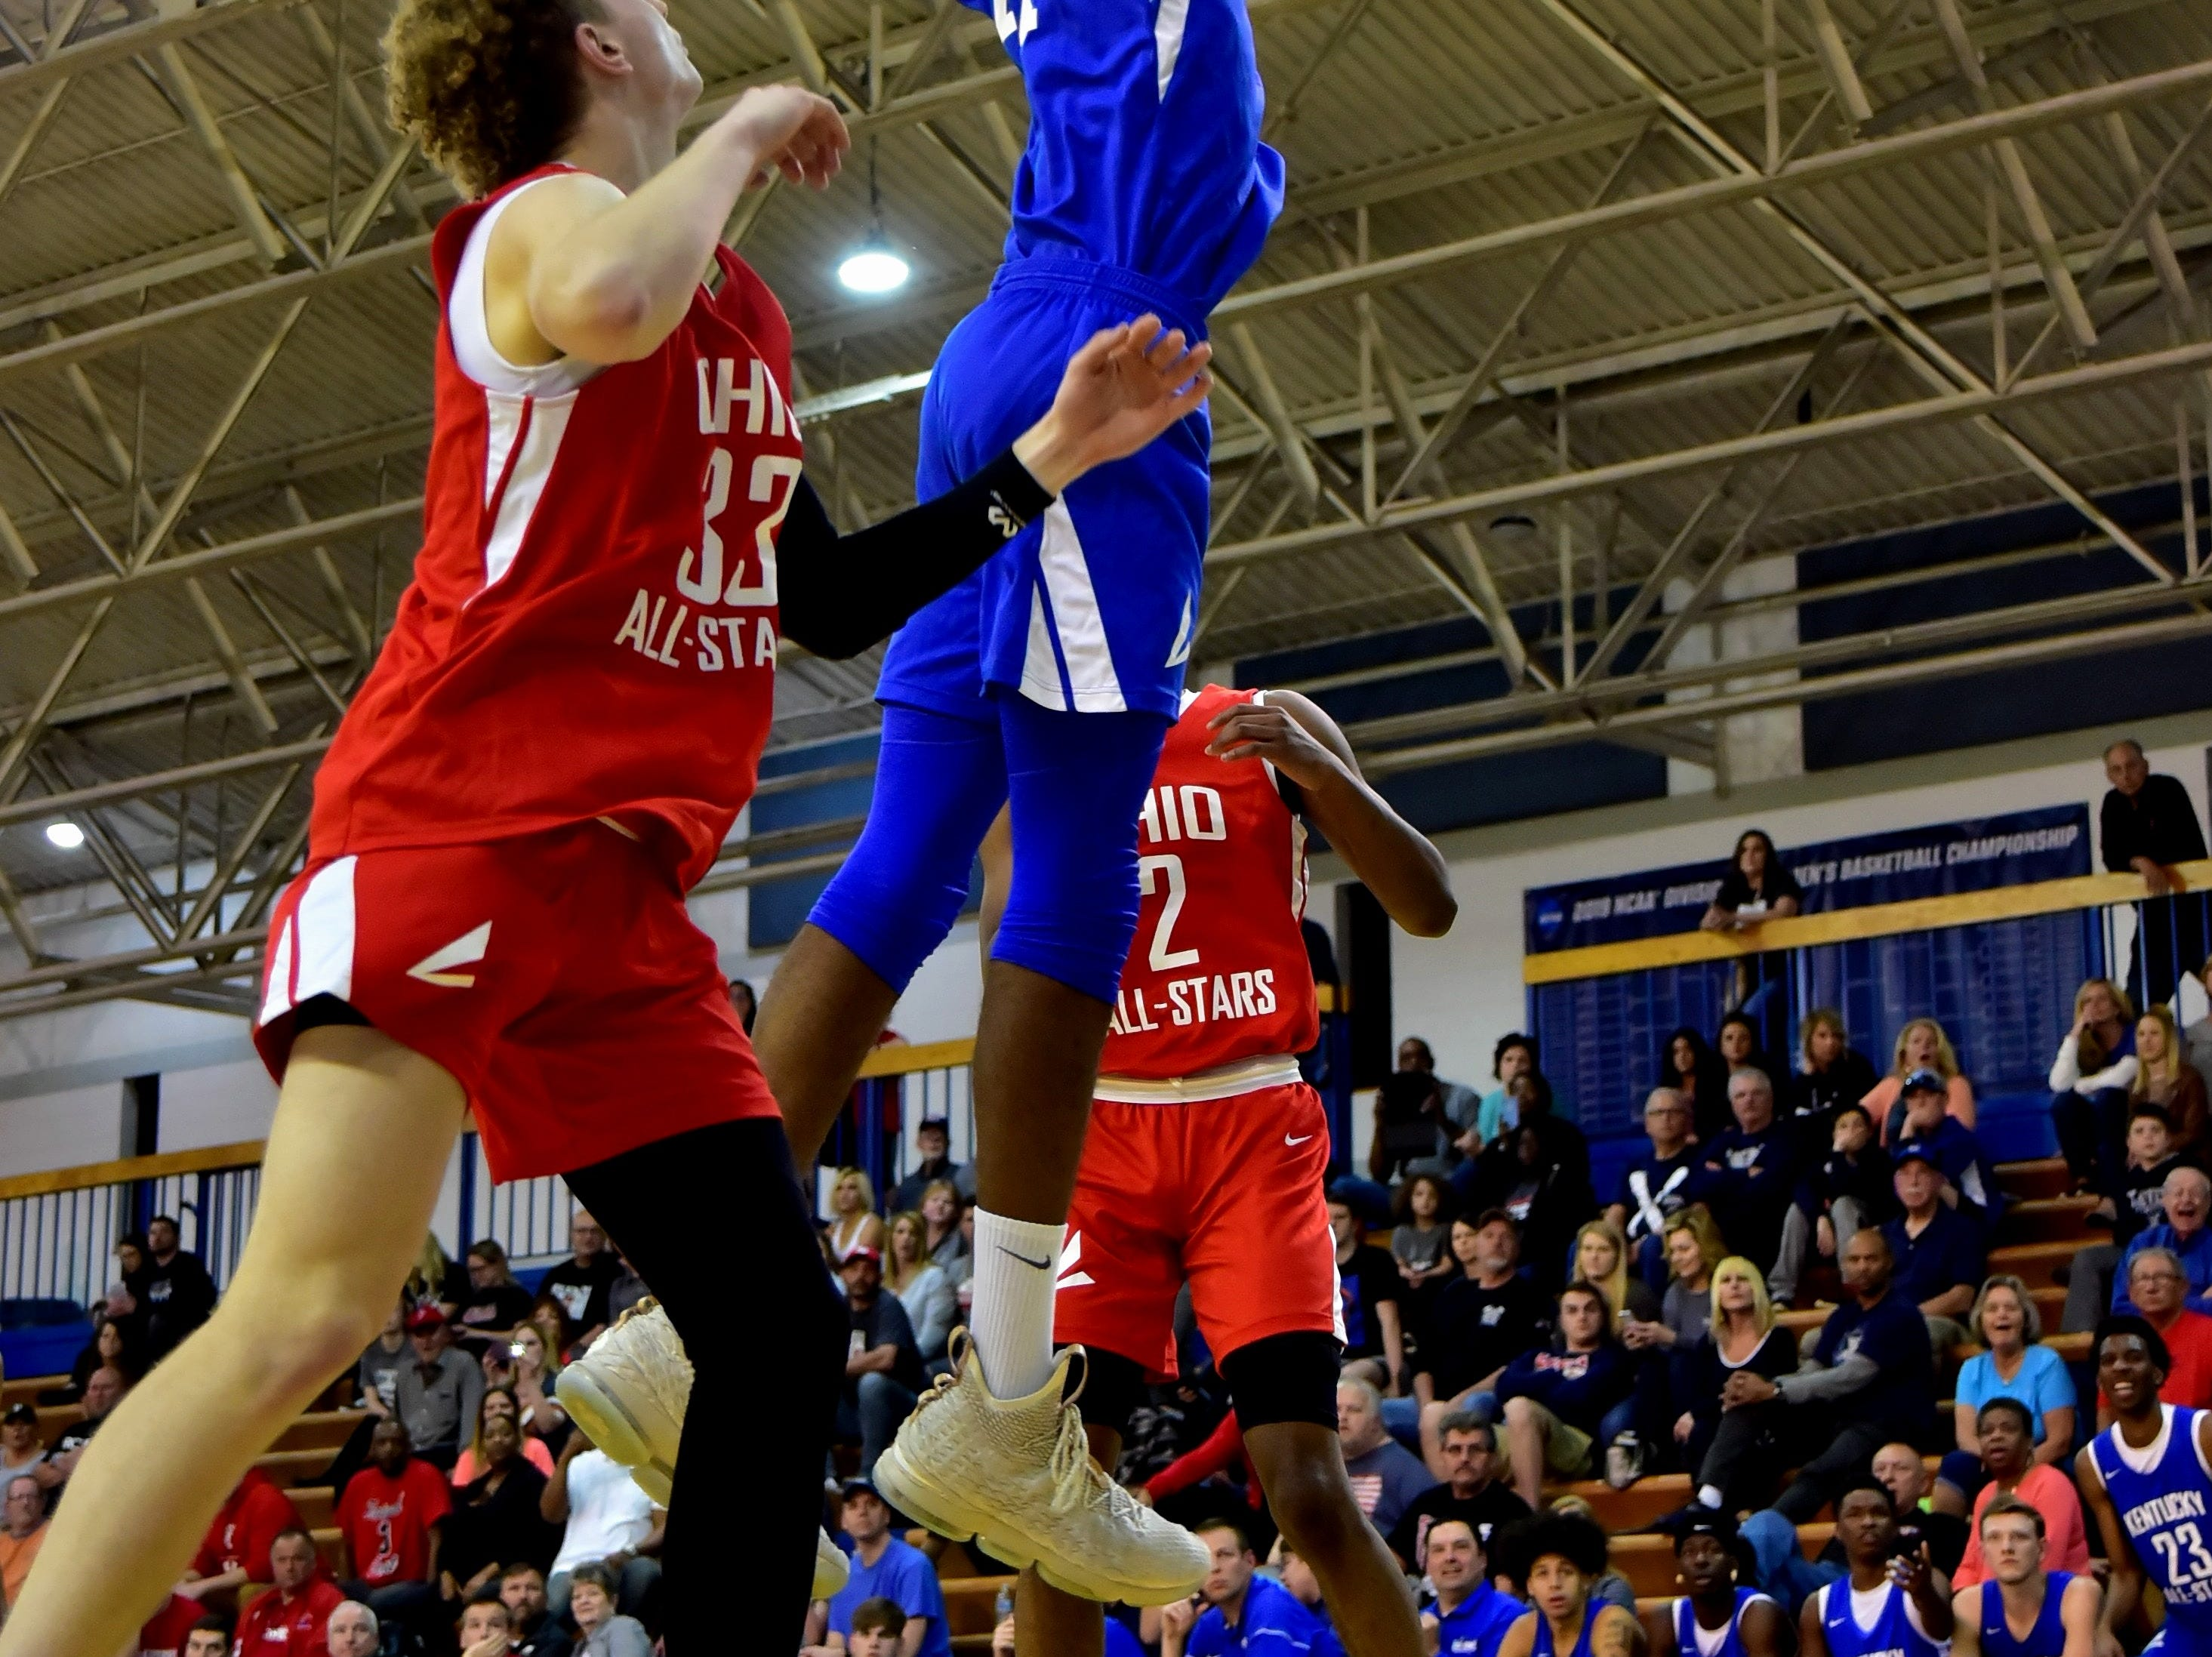 Dieonte Miles of Walton-Verona slams back an offensive rebound for a Kentucky boys team score at the 28th Annual Ohio-Kentucky All Star Games played at Thomas More University, April 13, 2019